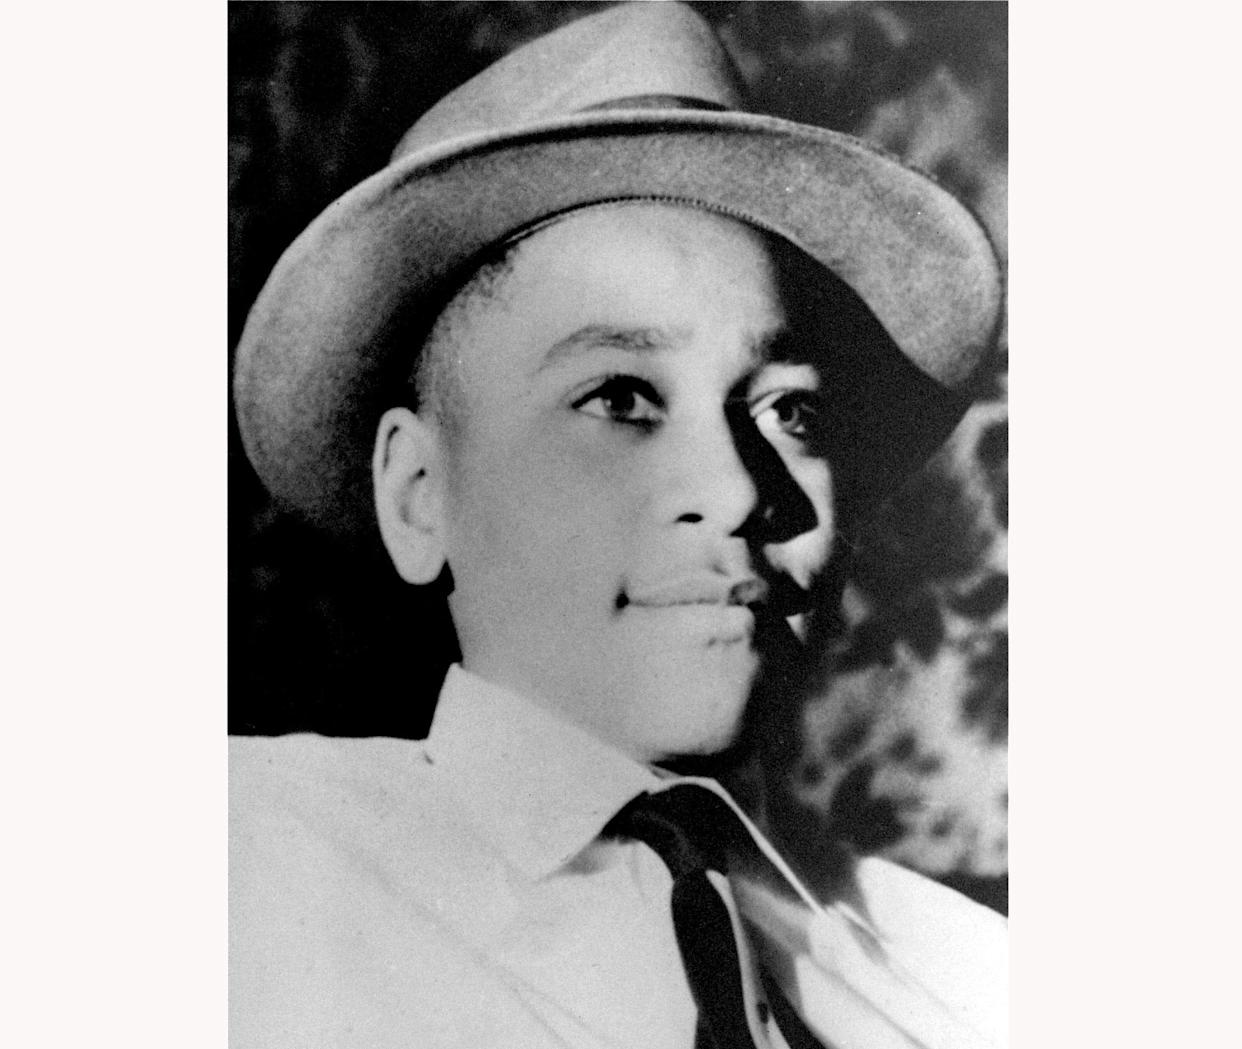 Emmett Till, a 14-year-old Chicago boy, was kidnapped, tortured and murdered in 1955 after he allegedly whistled at a white woman in Mississippi.